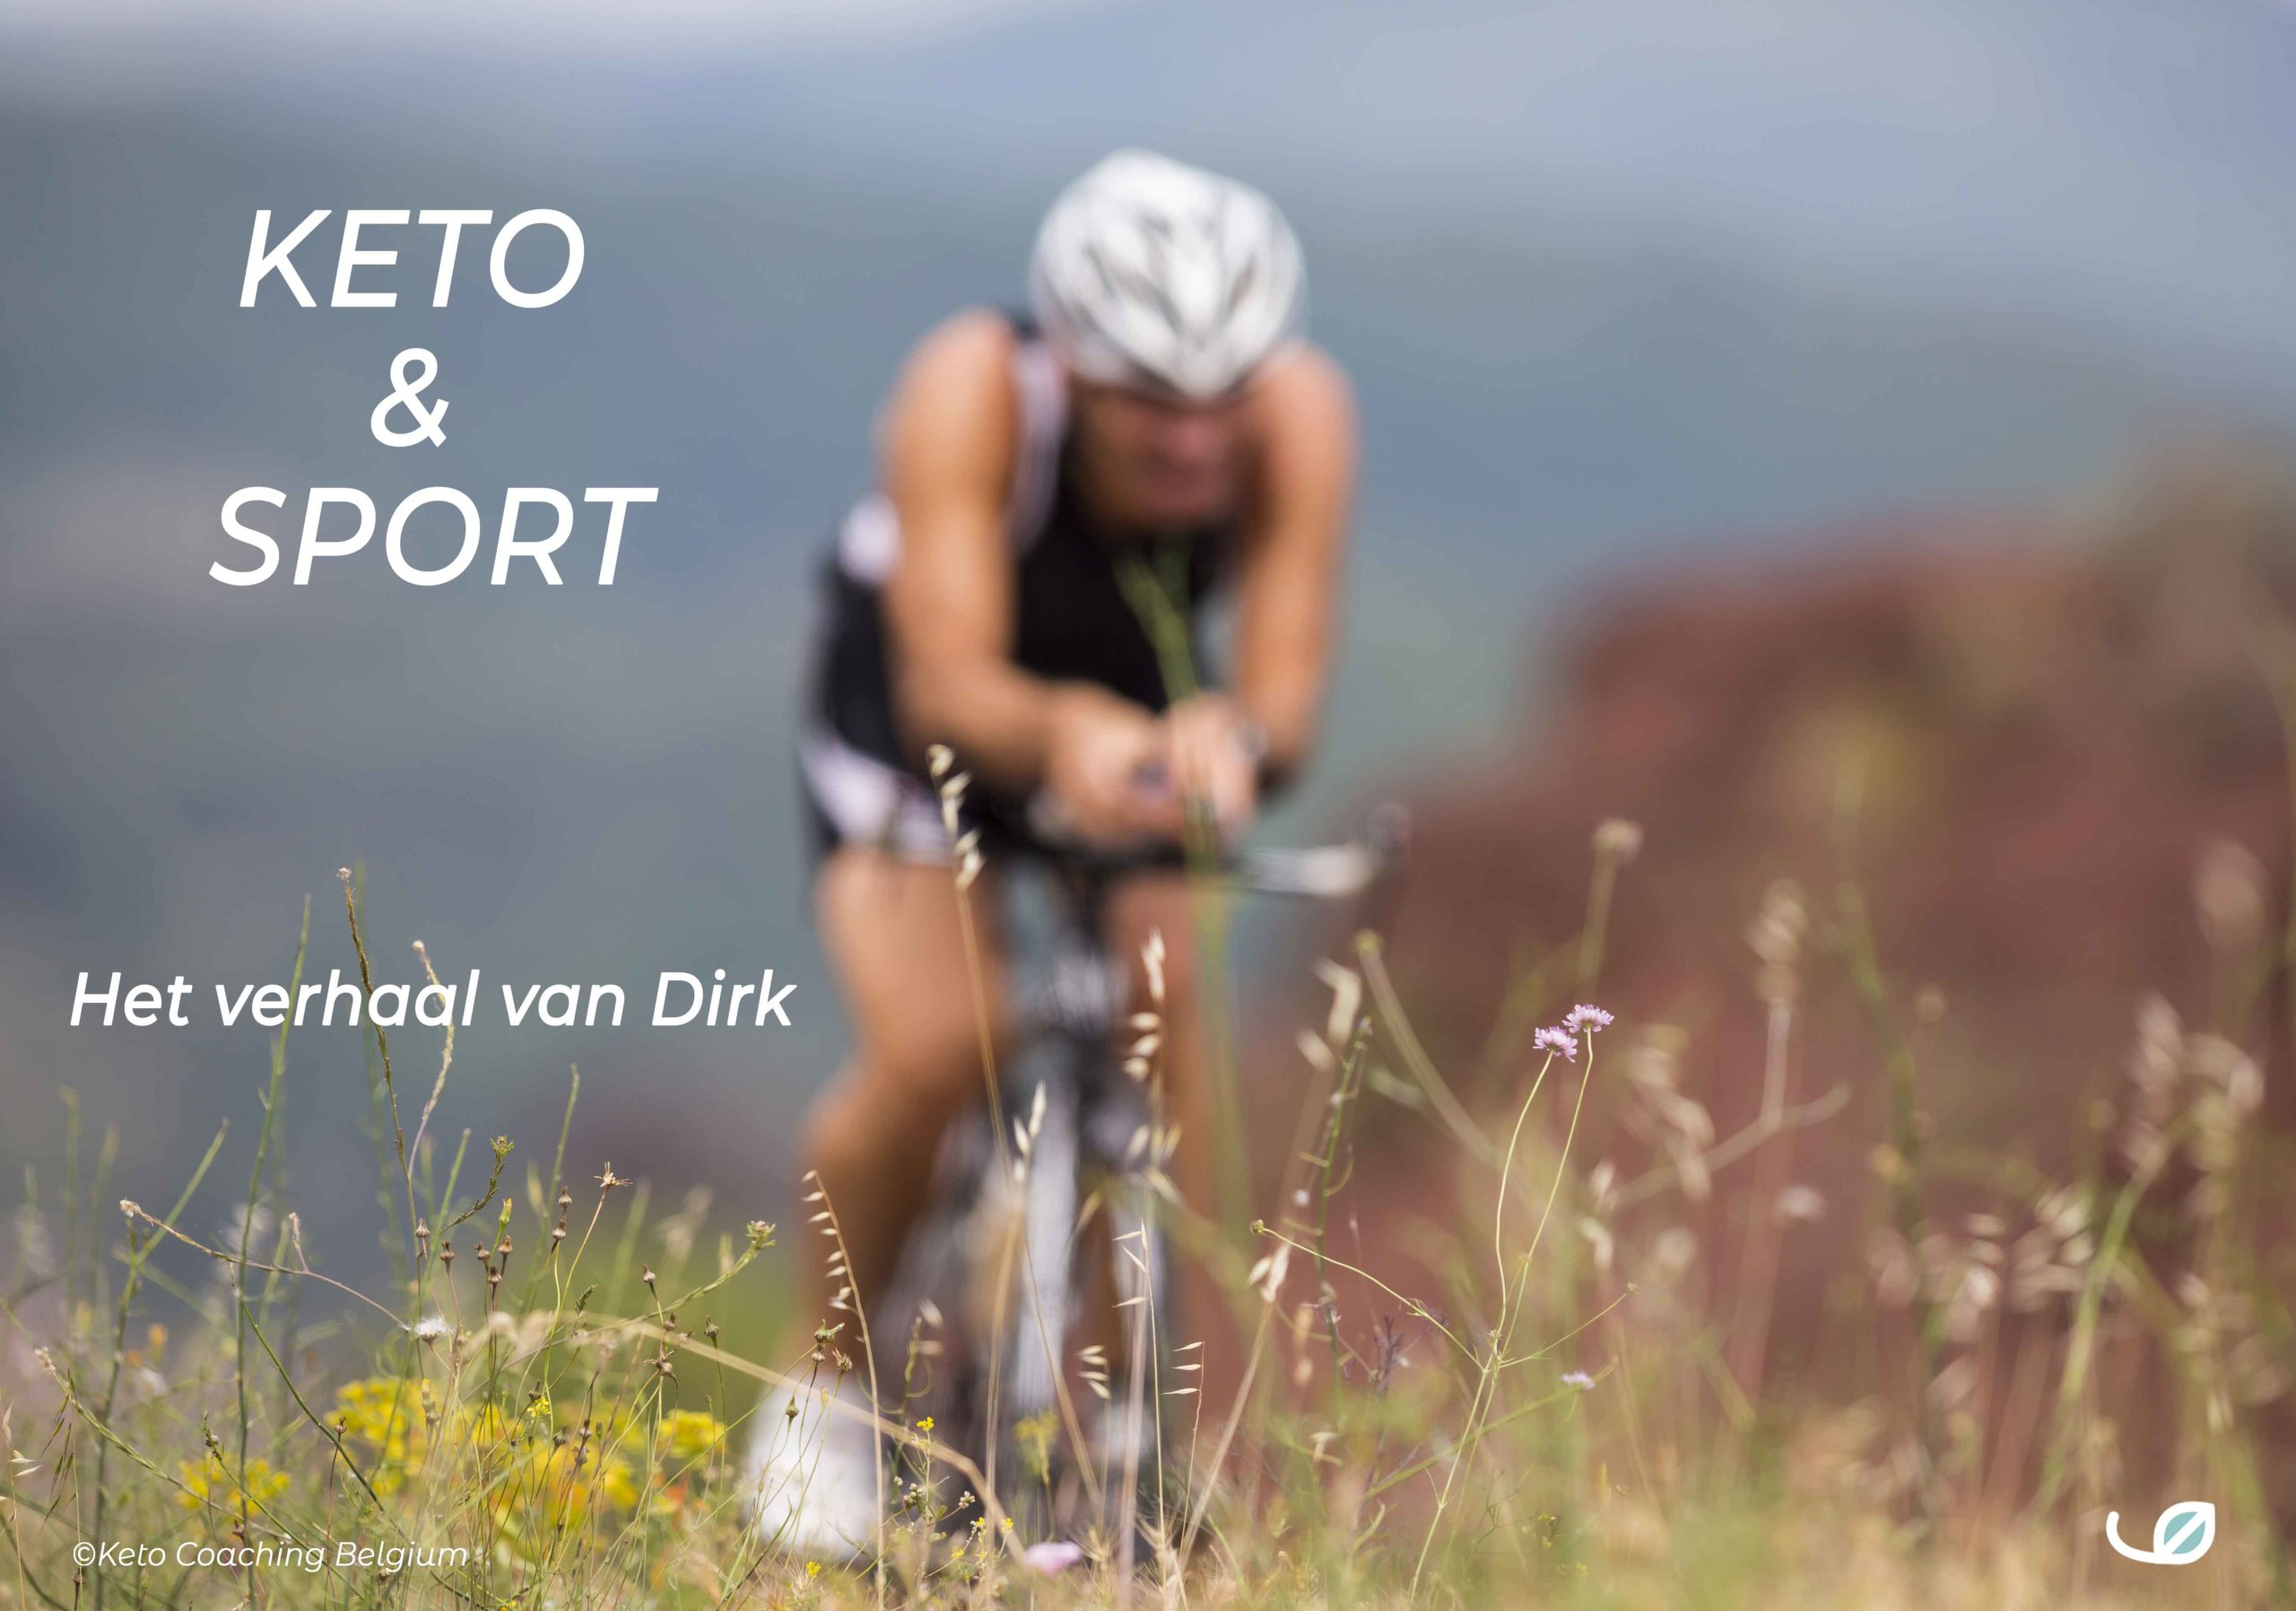 Keto en Sport interview Keto Coaching Belgium